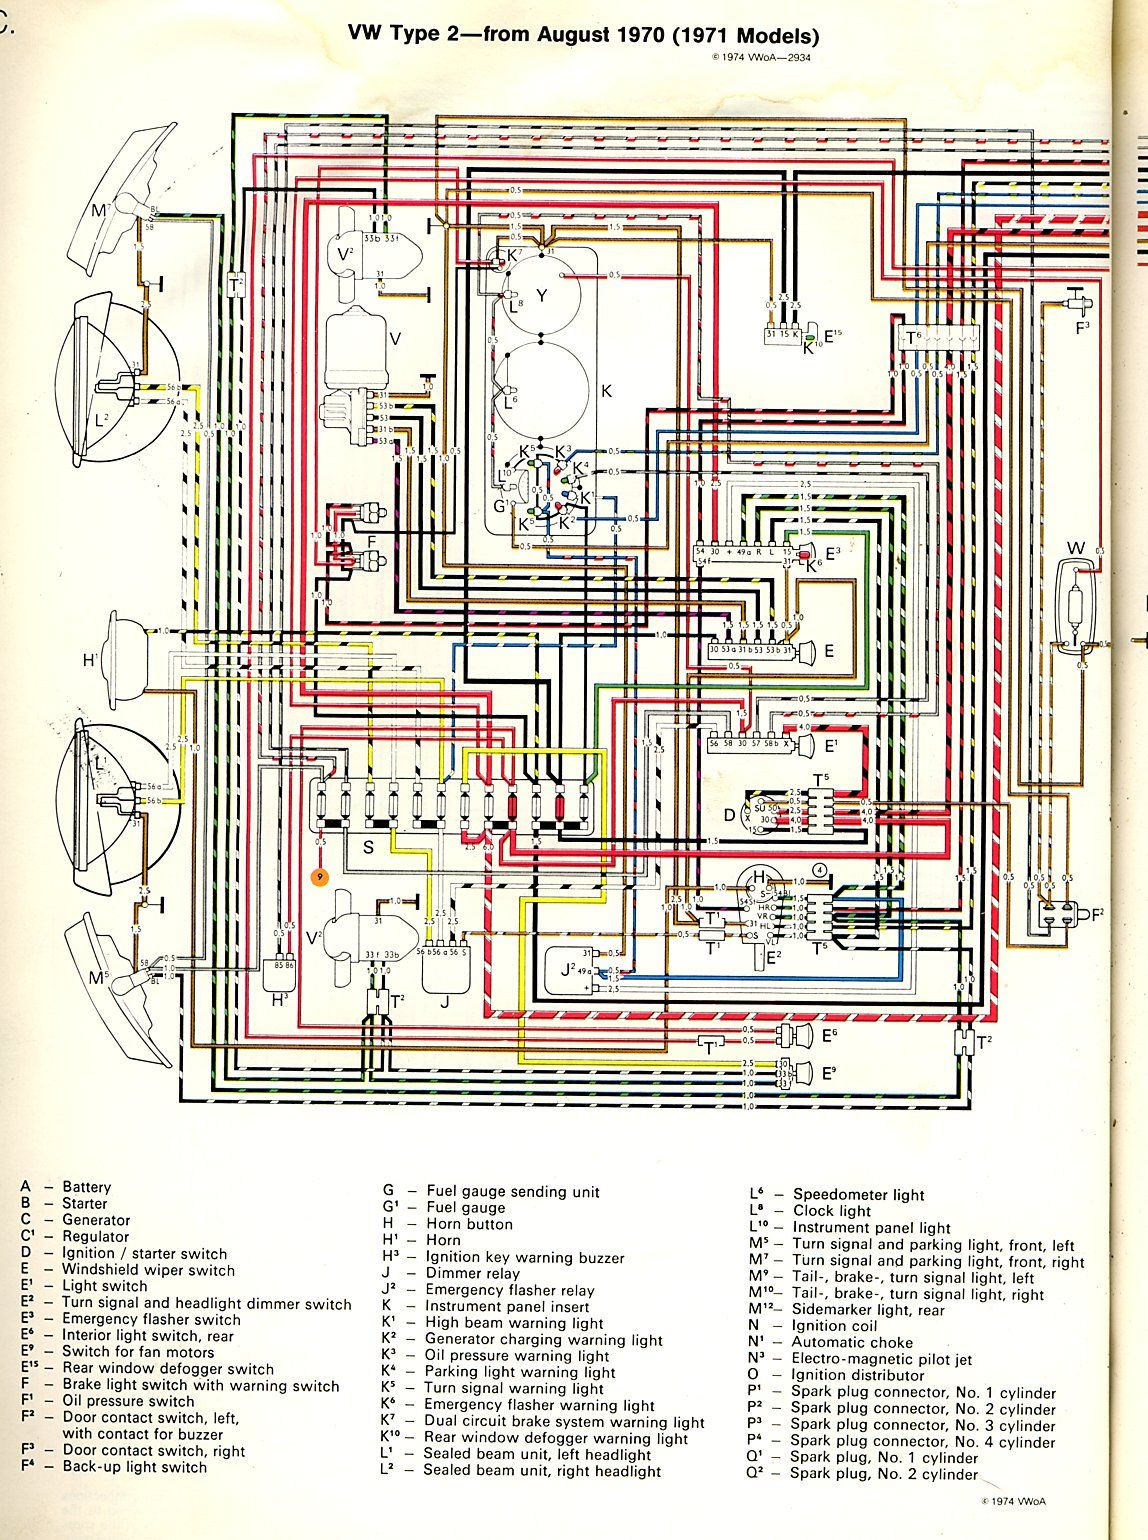 26730f3f6ceb3f1e1b50646c57249616 1971 bus wiring diagram thegoldenbug com stuff to try 1970 vw beetle wiring diagram at edmiracle.co